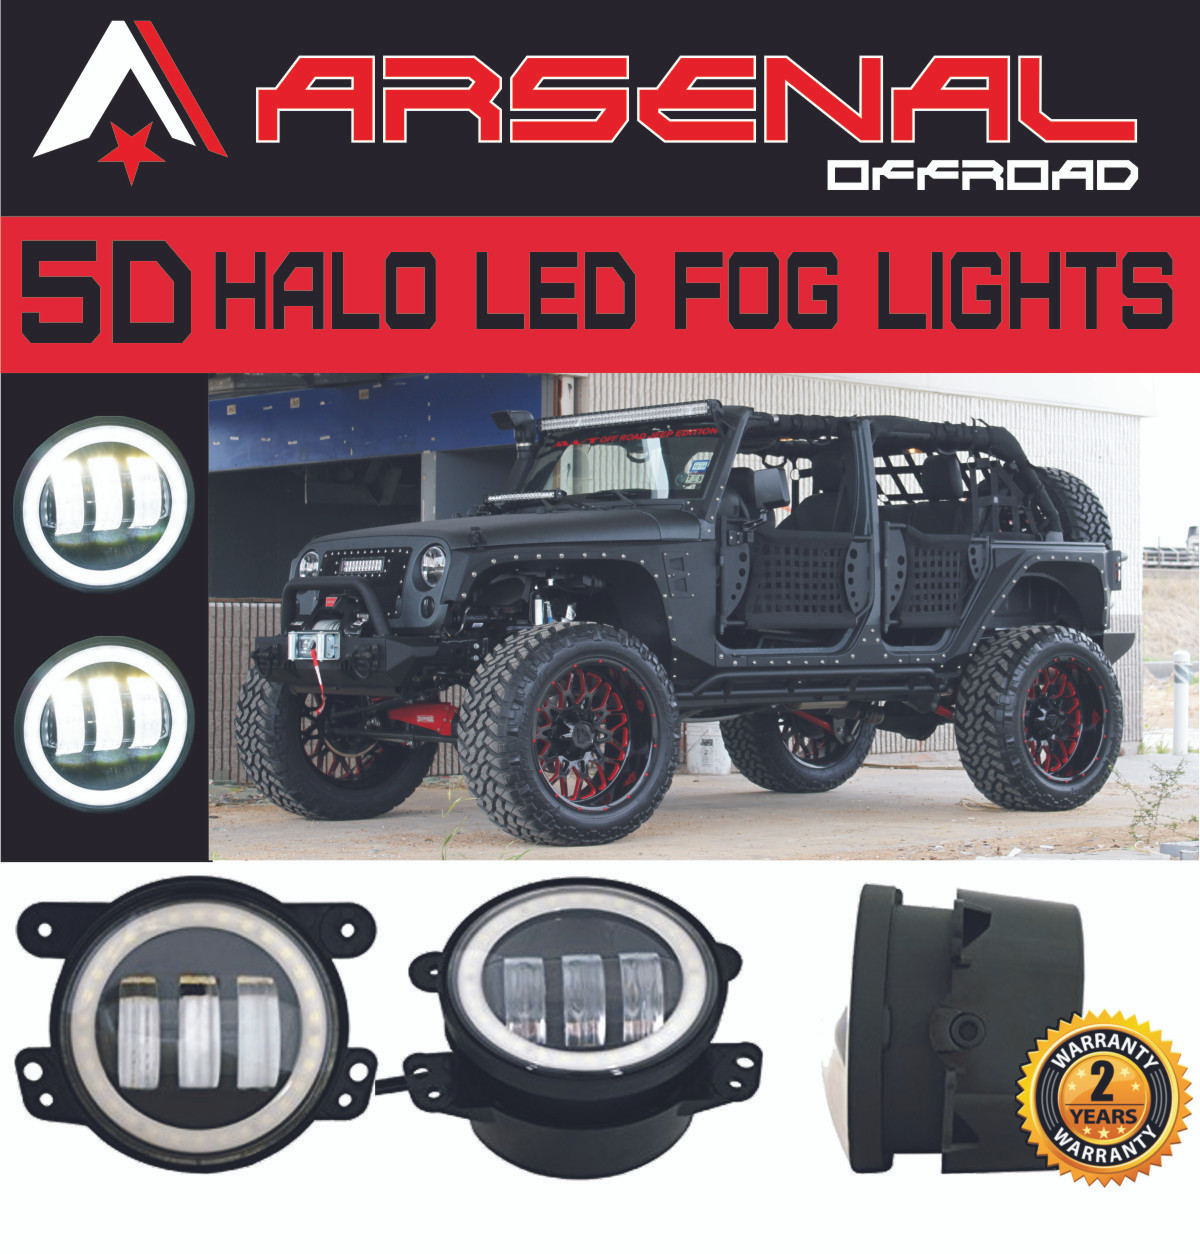 medium resolution of  1 4 inch 60w cree led fog lights w white halo ring drl for jeep wrangler 97 15 jk tj lj off road fog lamps